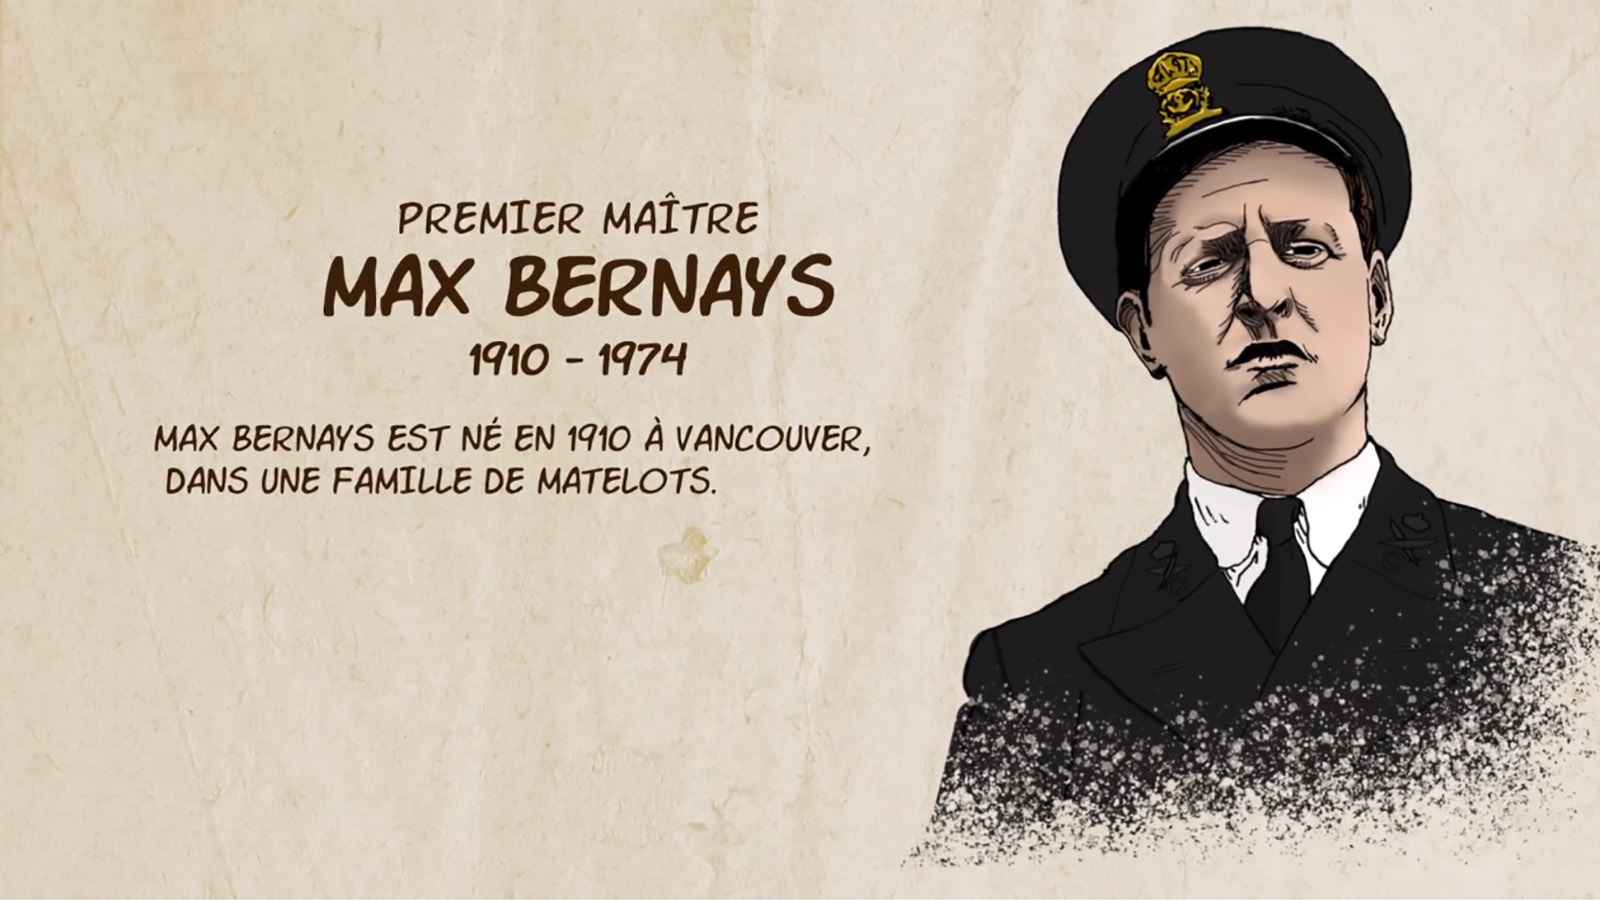 Diapositive - Max Bernays